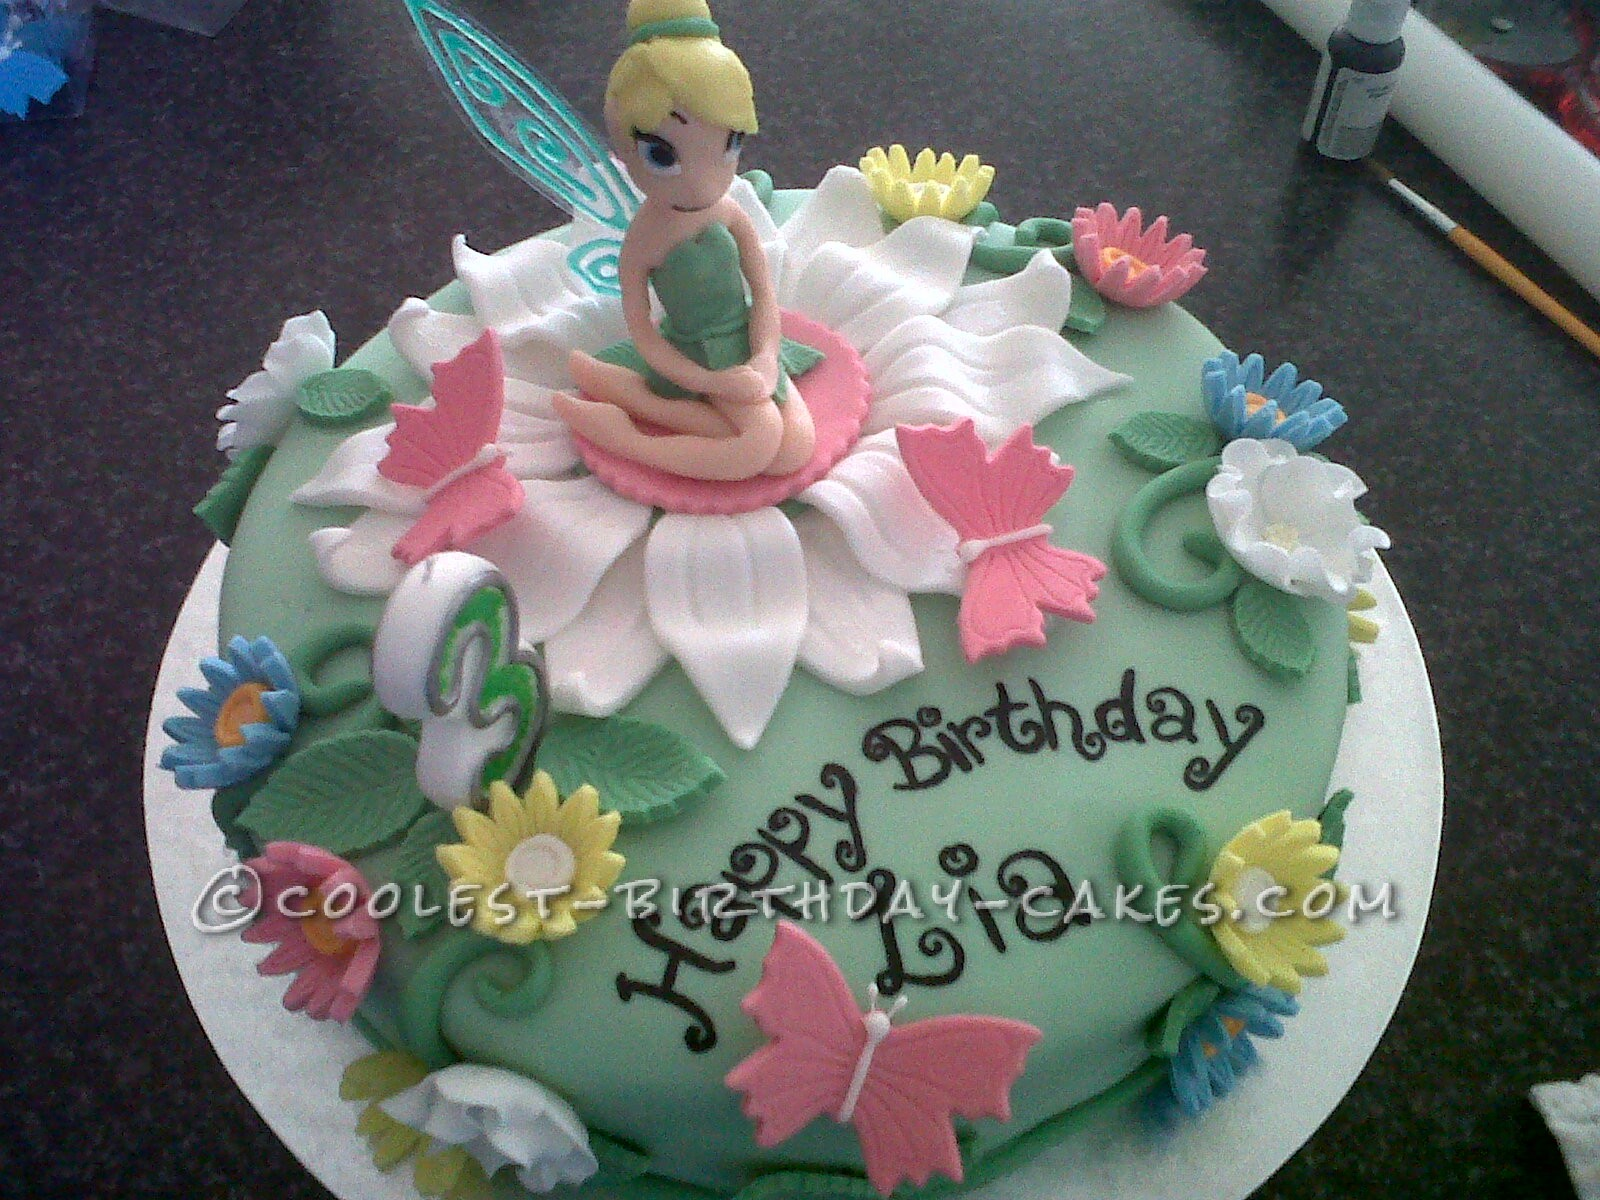 A Real Tinkerbell Birthday Cake